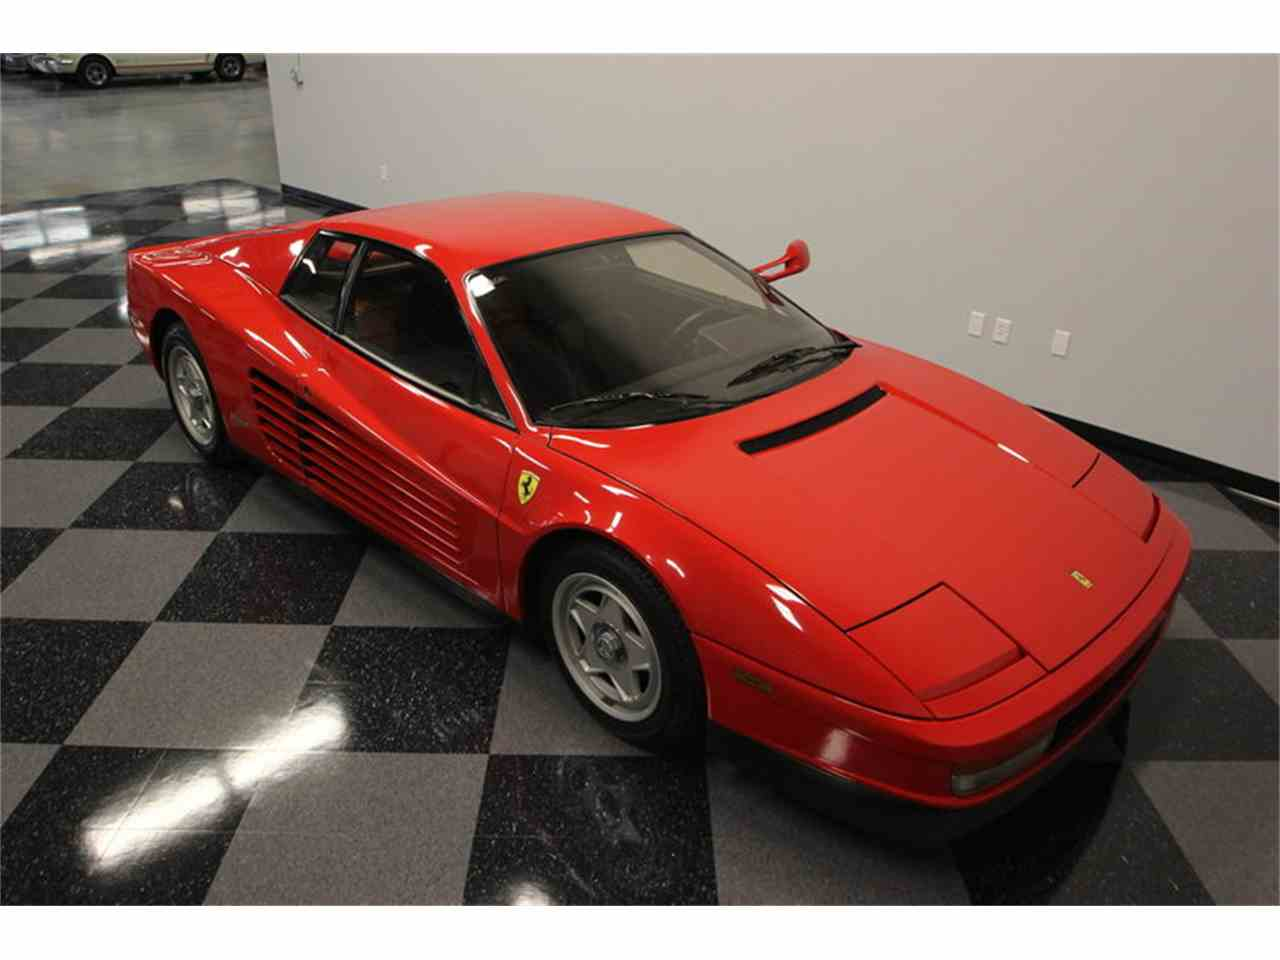 Large Picture of '86 Ferrari Testarossa located in Lutz Florida - $159,995.00 Offered by Streetside Classics - Tampa - FNNC